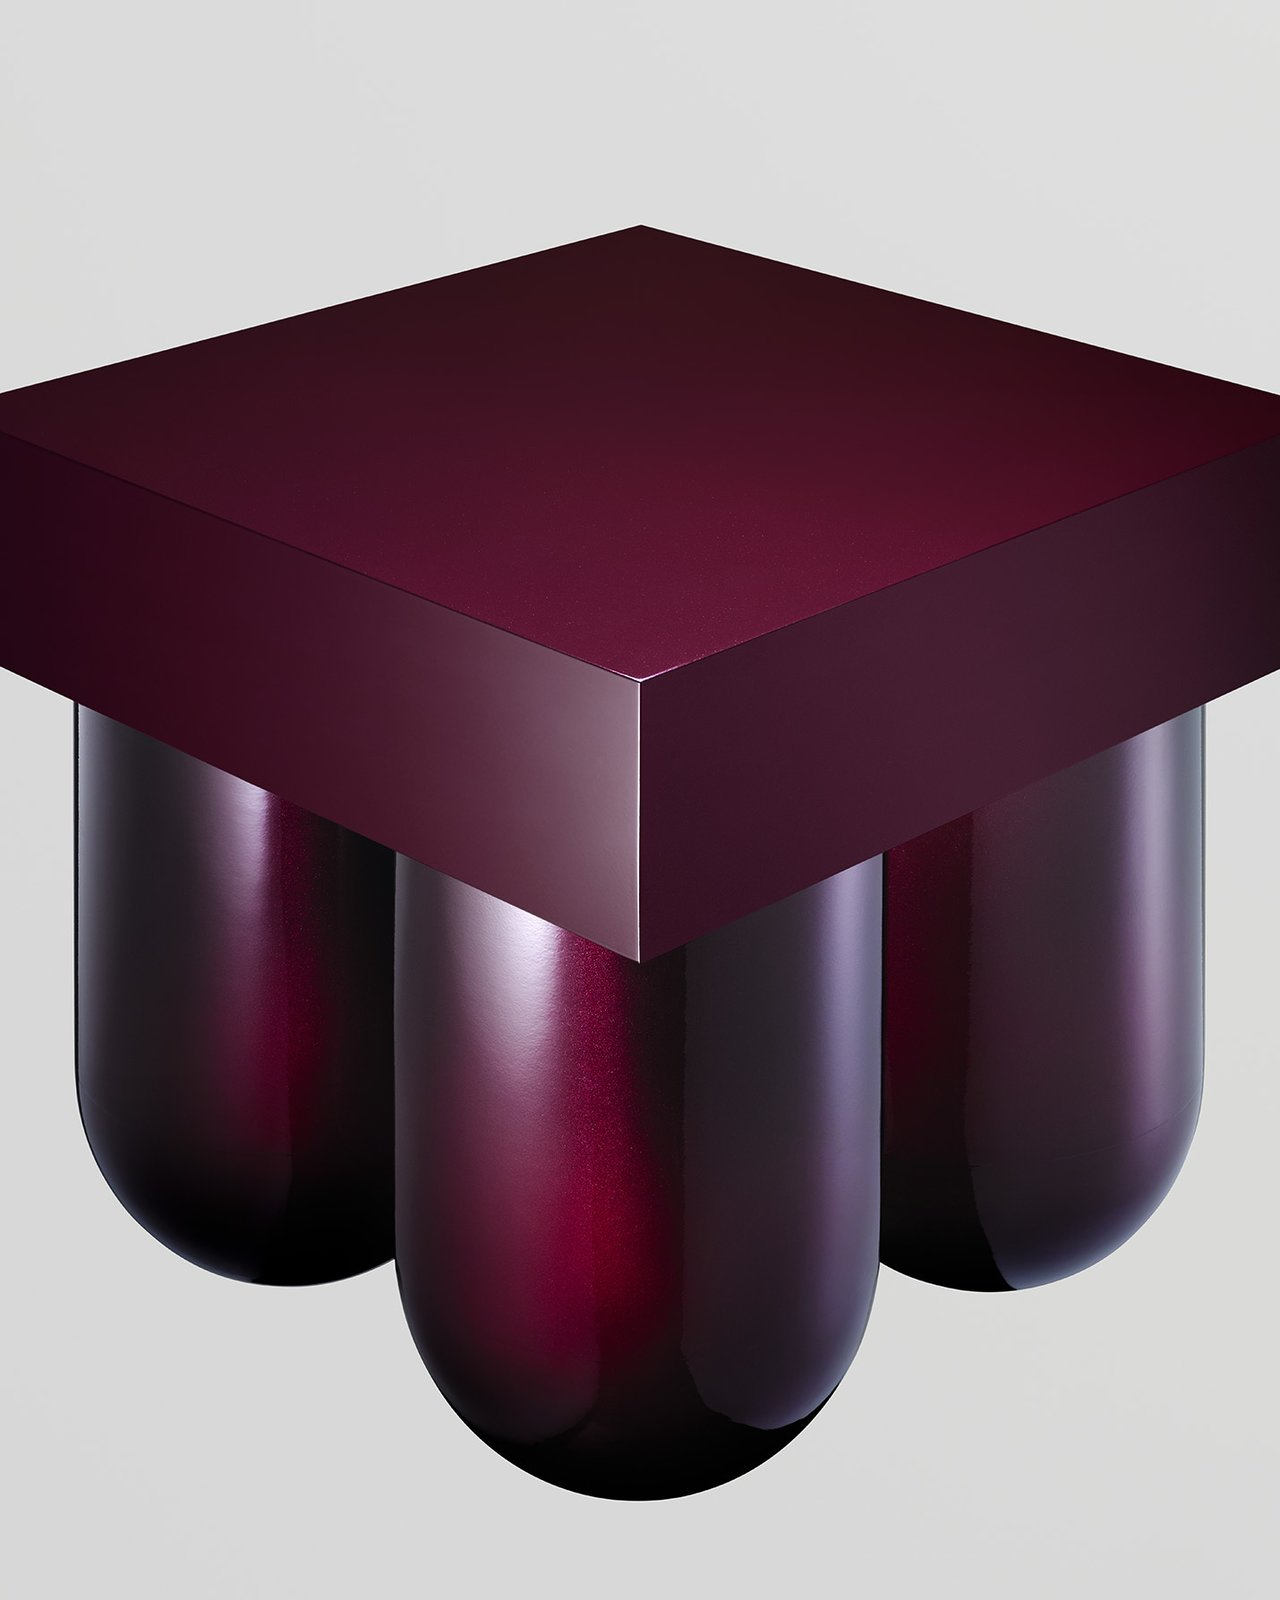 Living Room and Table Álvaro Gómez-Sellés and Marisa Müsing, known jointly as Müsing–Sellés, created a portly plywood cocktail table, coated in reflective aubergine gloss, as part of their new line.  Photo 15 of 25 in Meet the Dwell 24: Two Dozen Up-and-Coming Designers to Watch in 2018